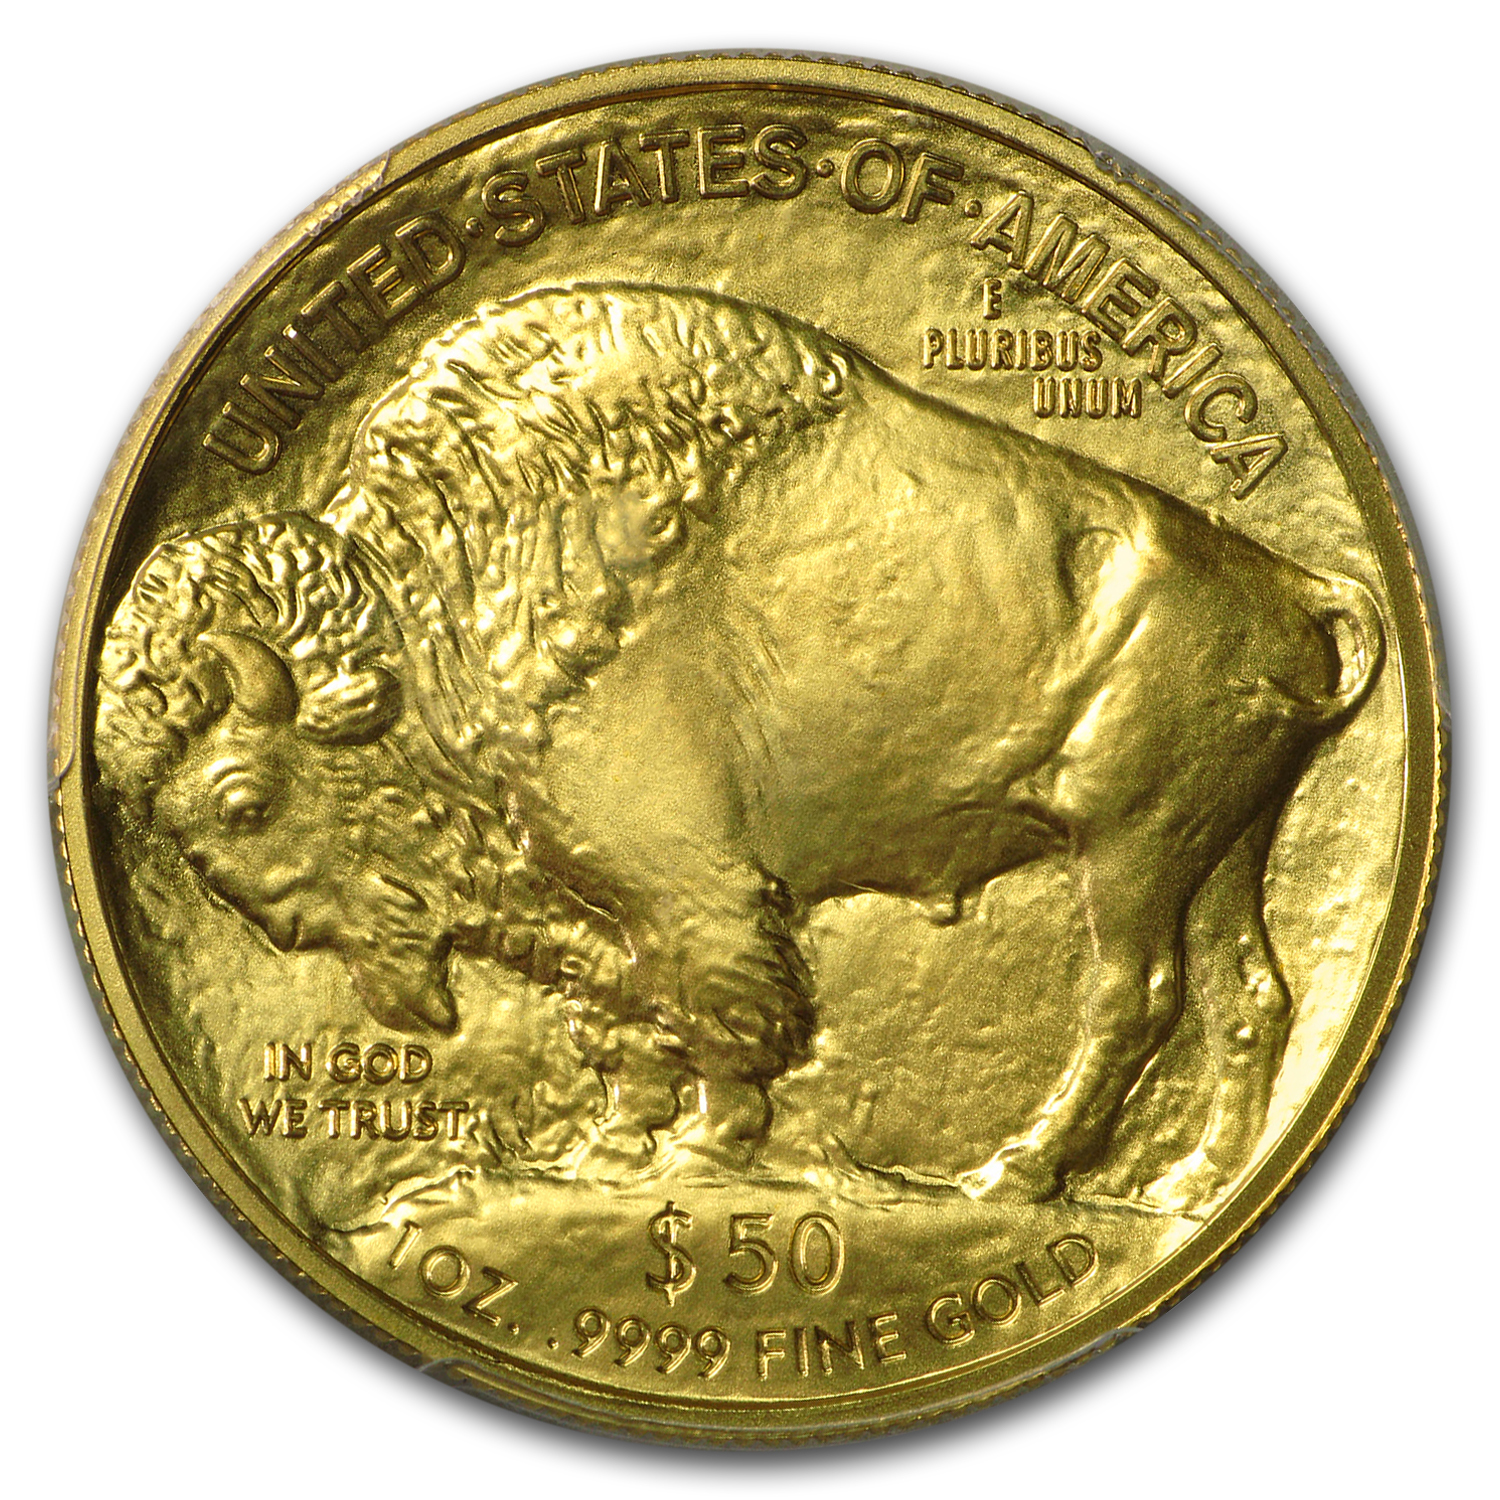 2014 1 oz Gold Buffalo MS-70 PCGS (First Strike)